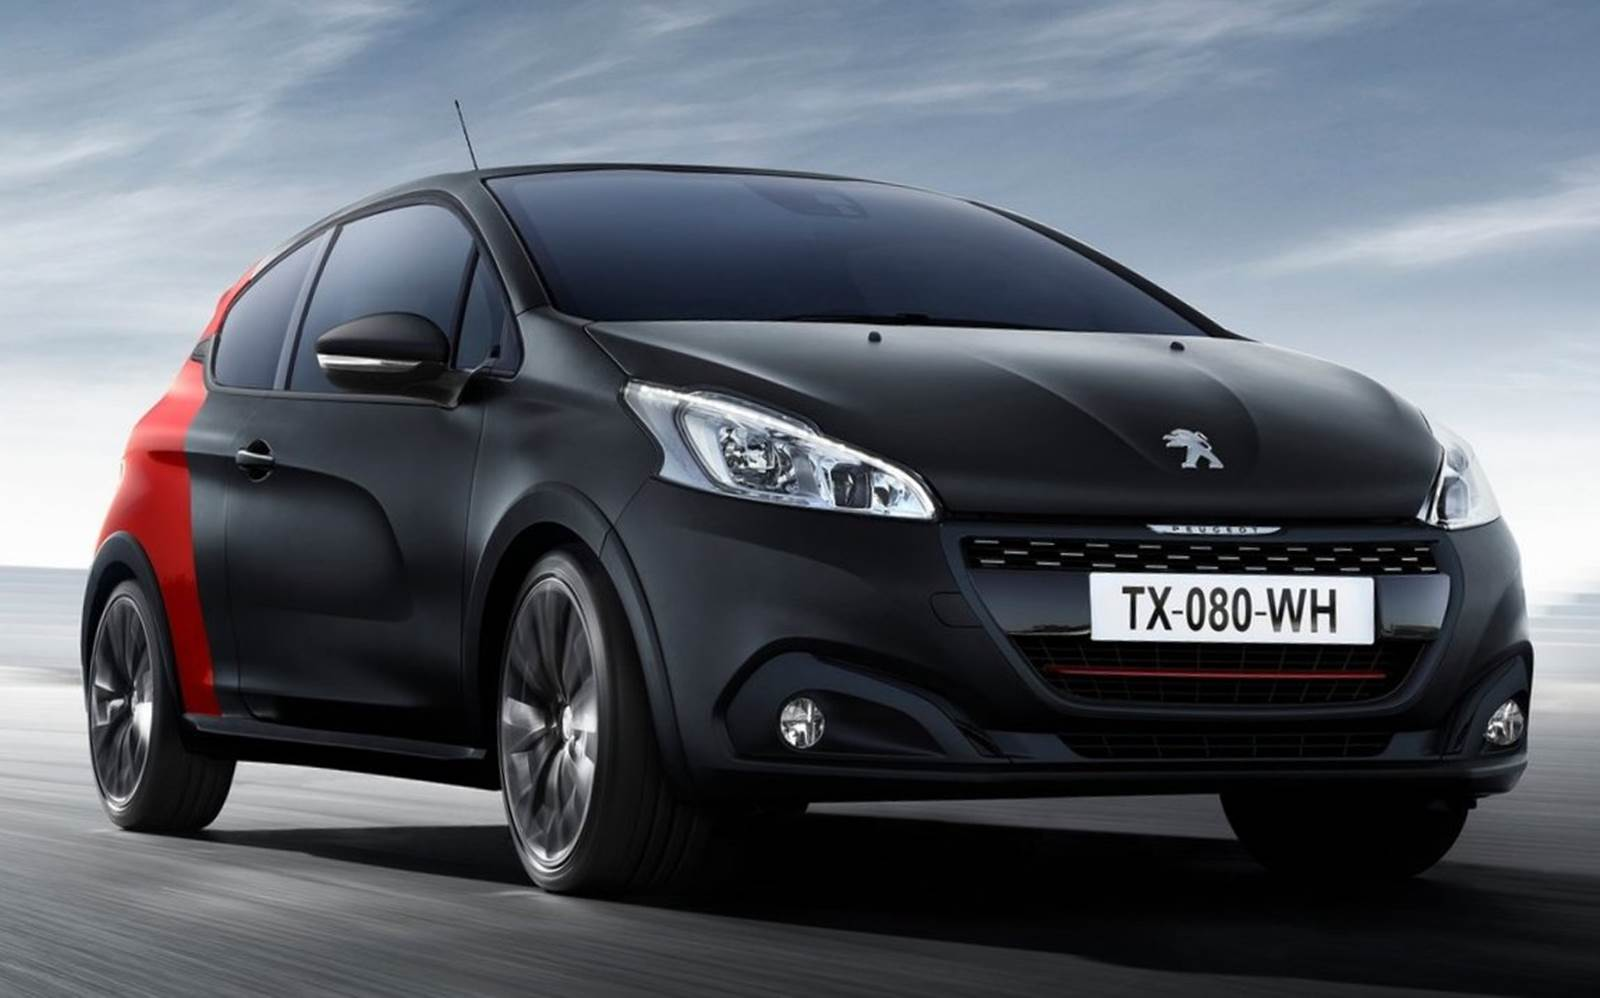 novo peugeot 208 2016 v deo e especifica es oficiais car blog br. Black Bedroom Furniture Sets. Home Design Ideas